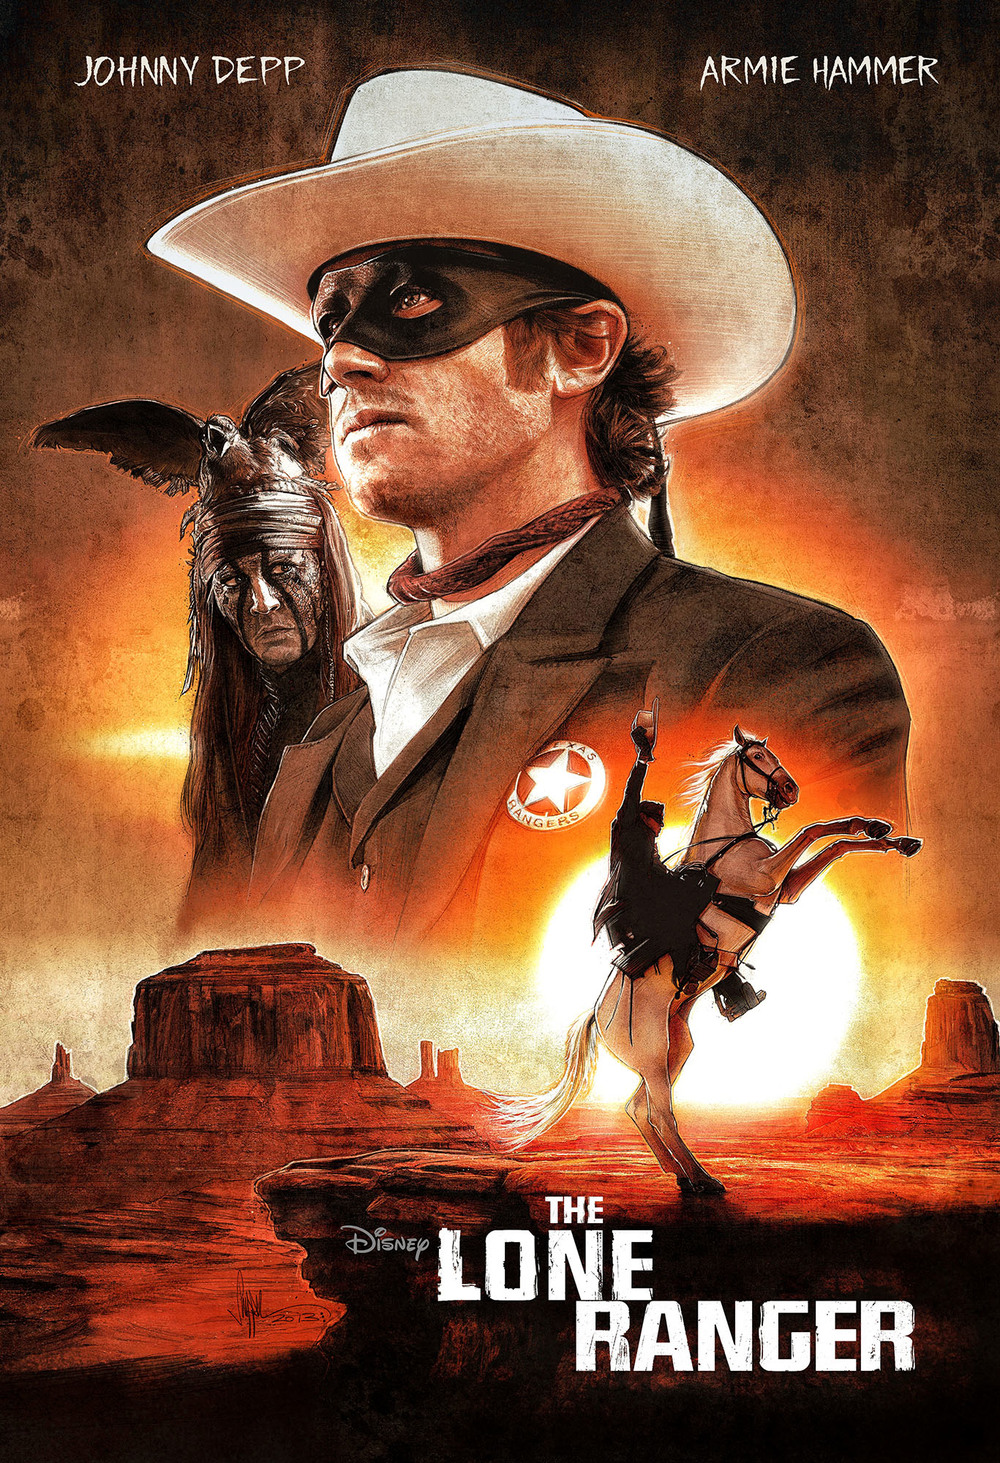 Lone Ranger - Illustrated One Sheet Design